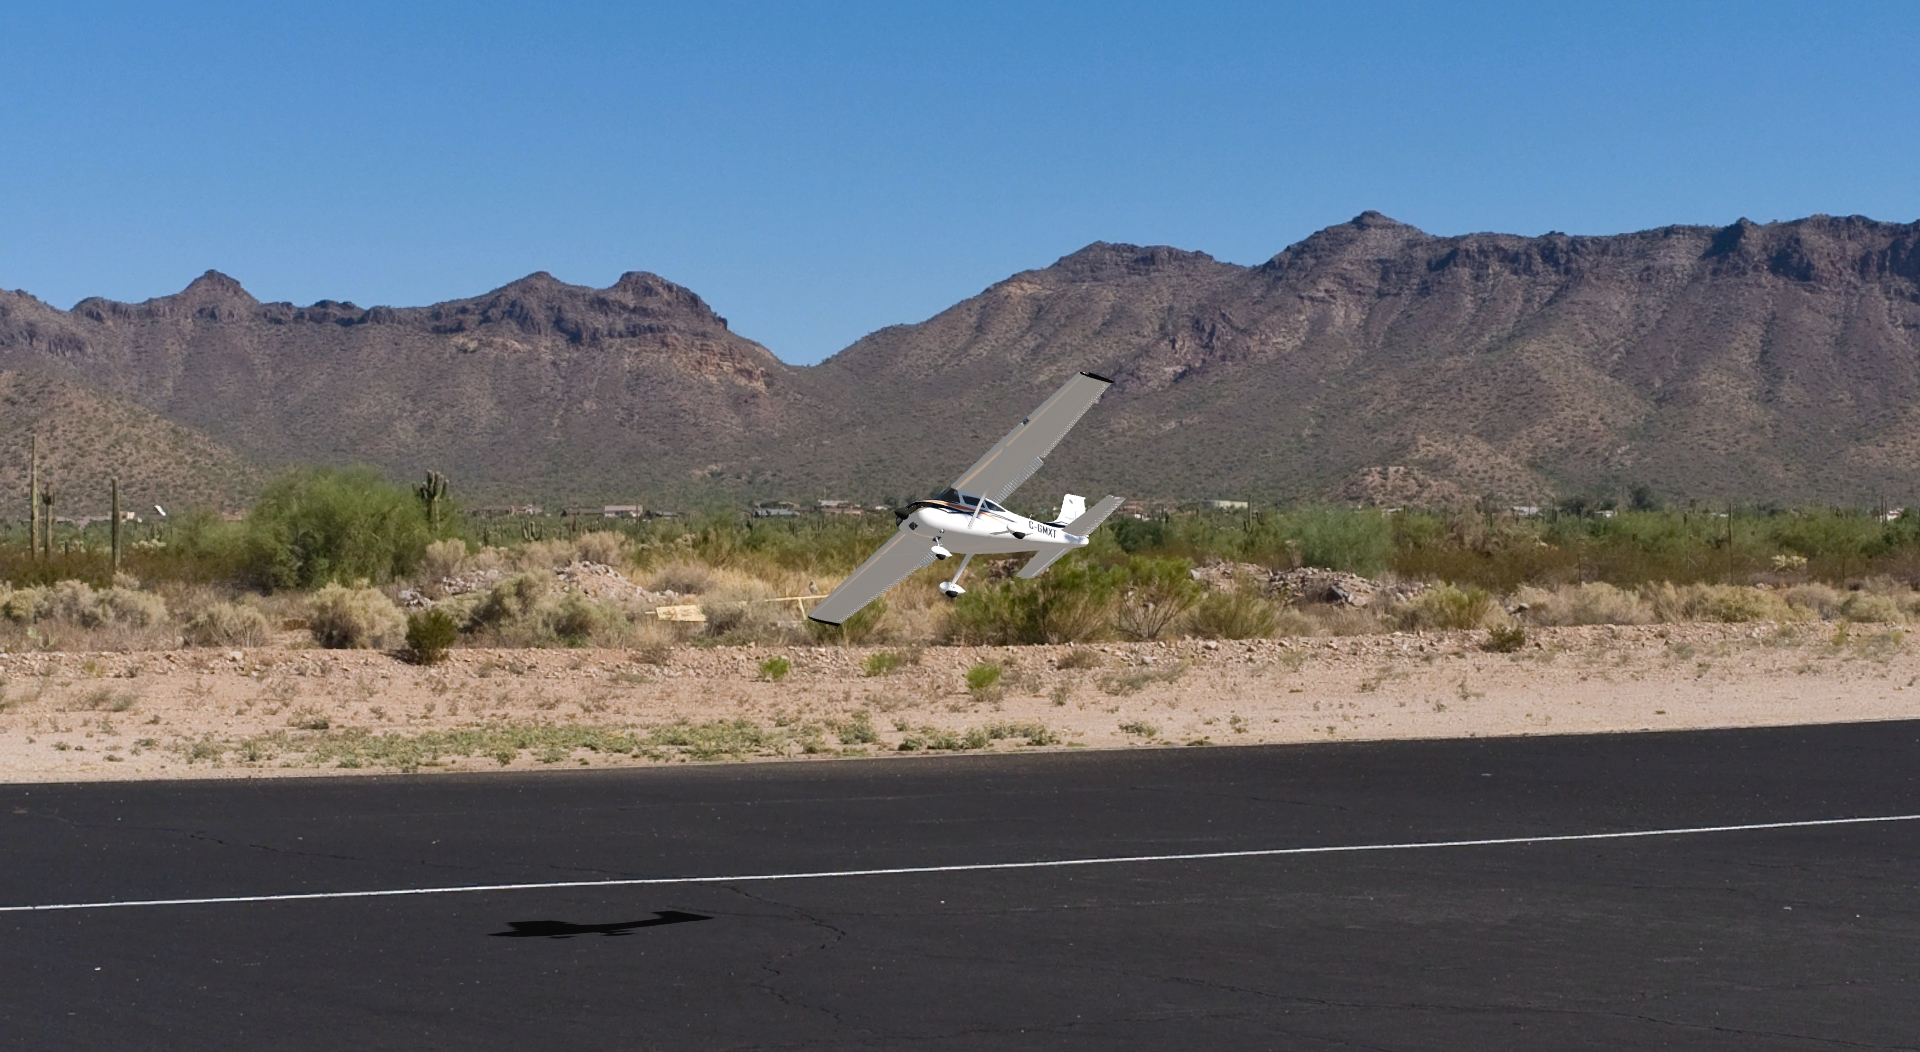 Cessna 182 Skylane in the aerofly RC 7 scenery us-phoenix